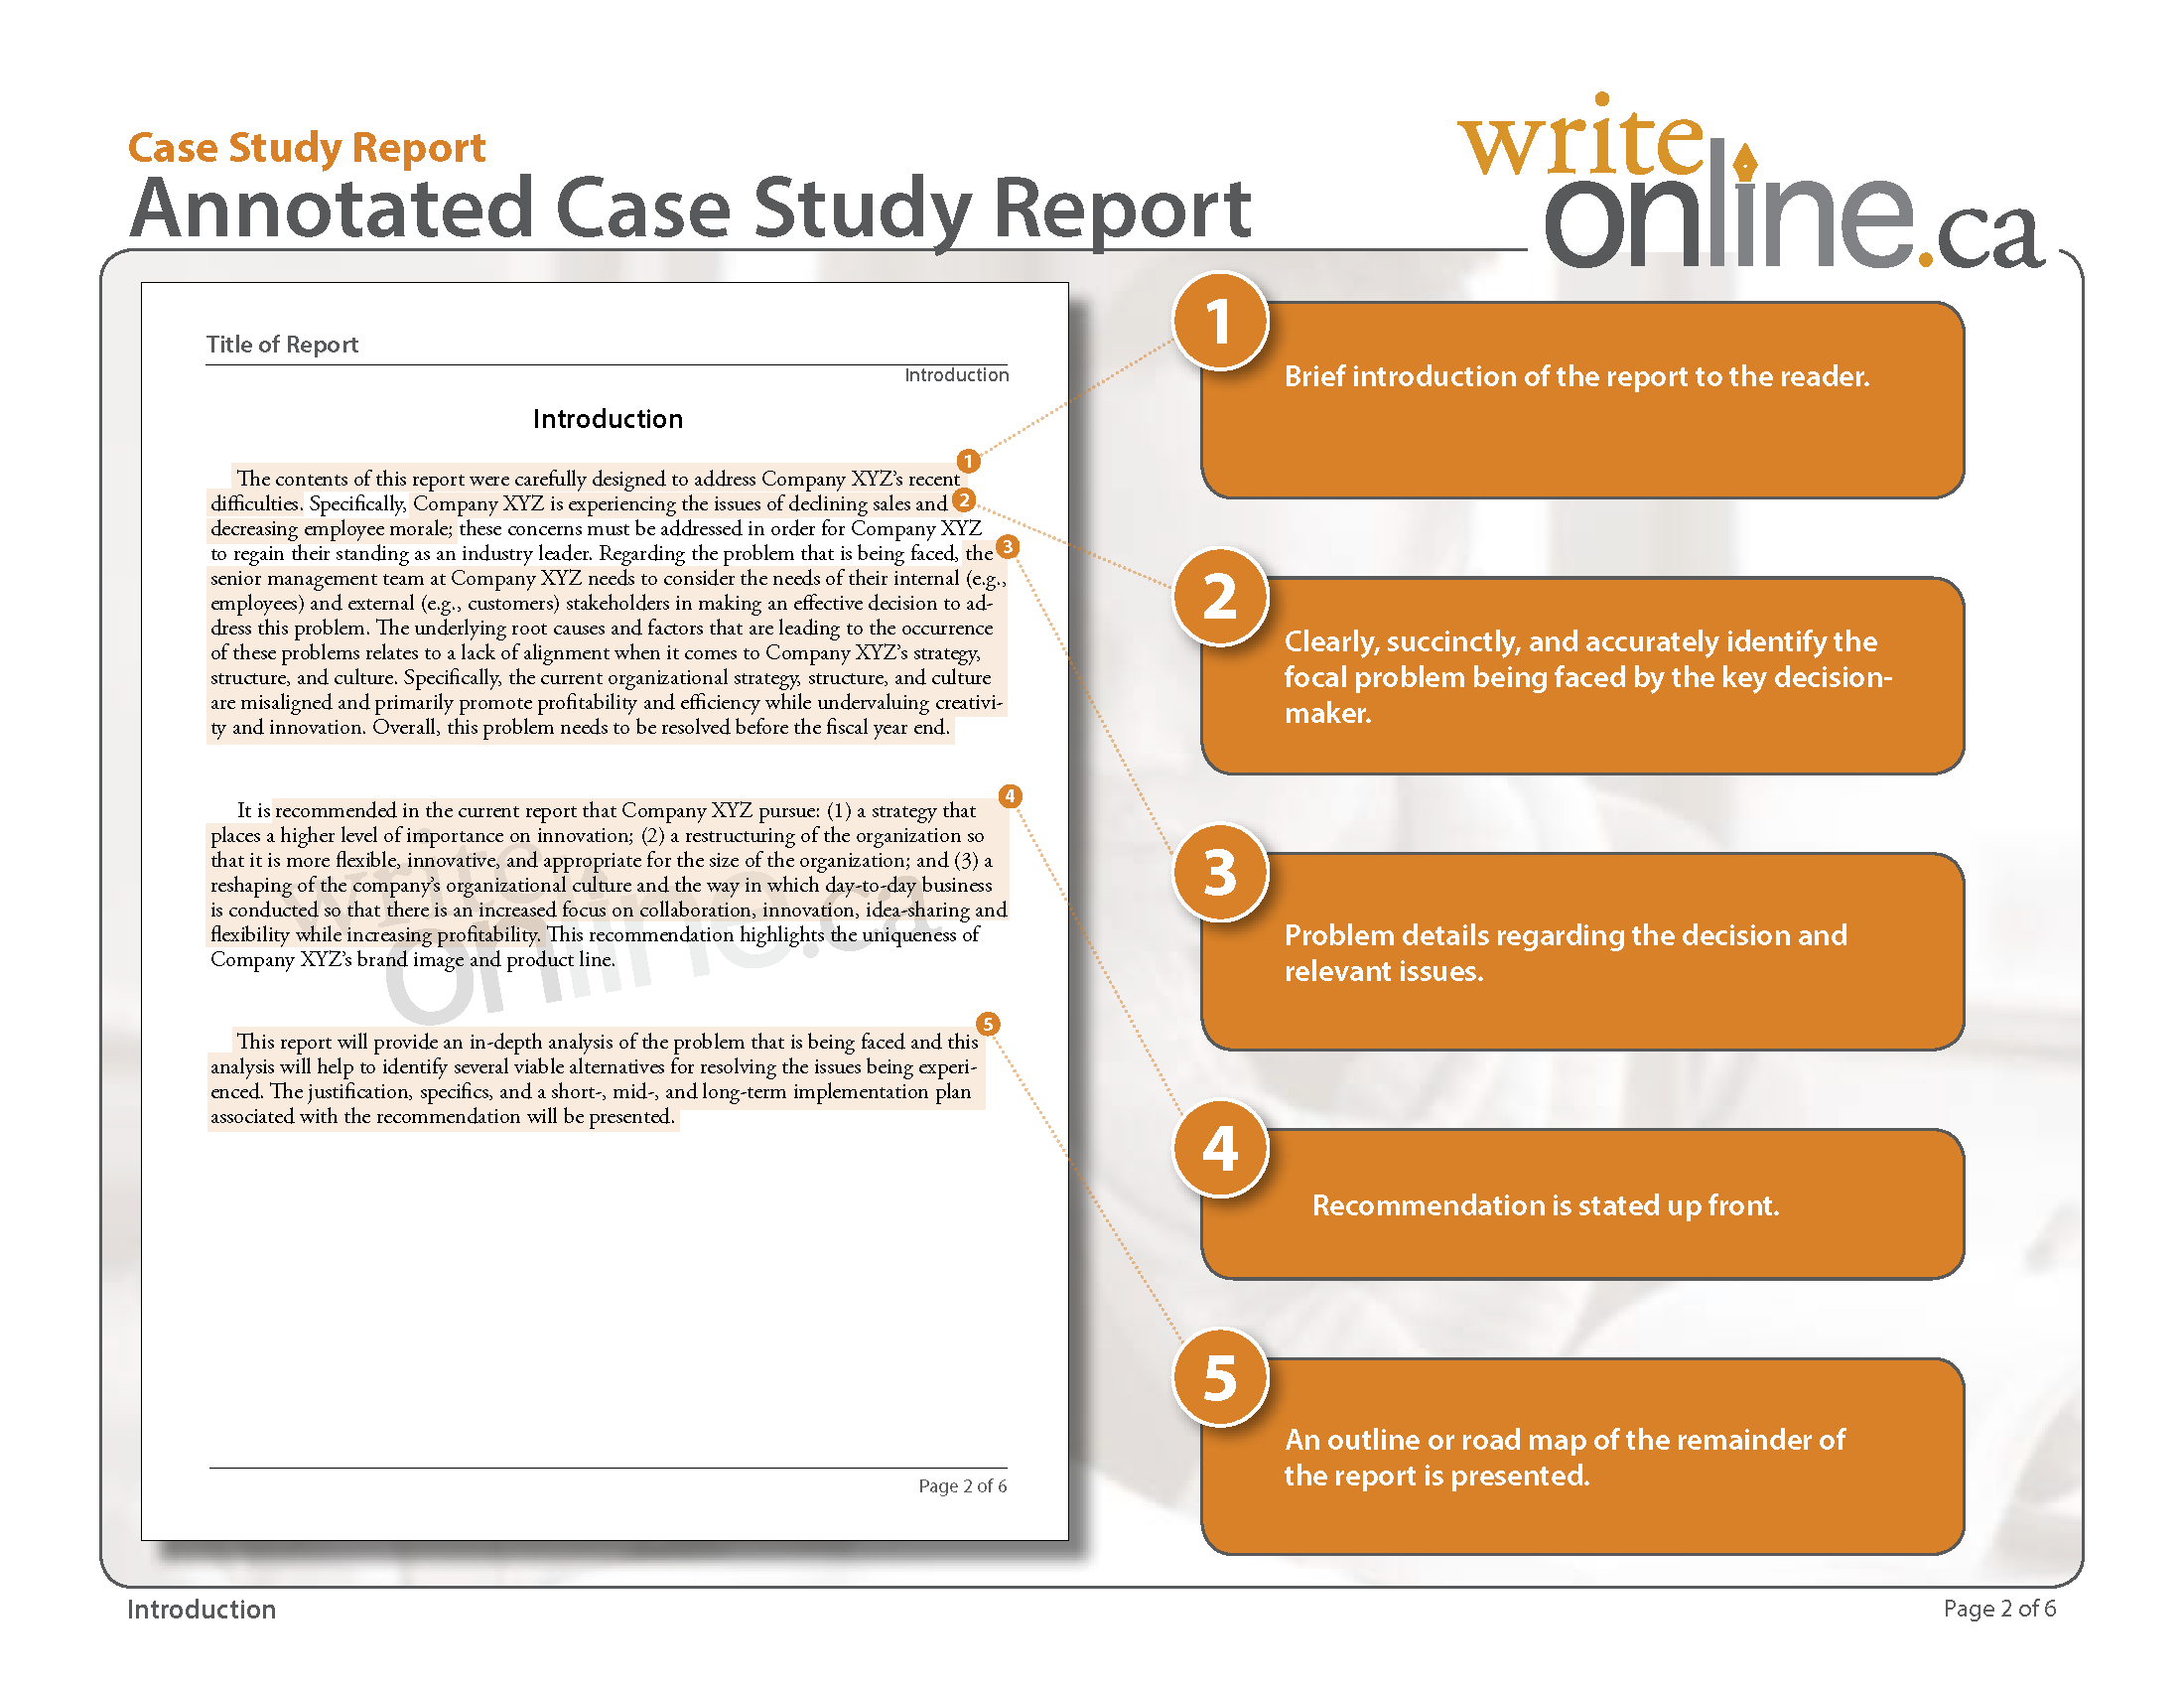 009 Research Paper Casestudy Annotatedfull Page 2 Component Of Archaicawful Pdf Parts Chapter Quantitative Full